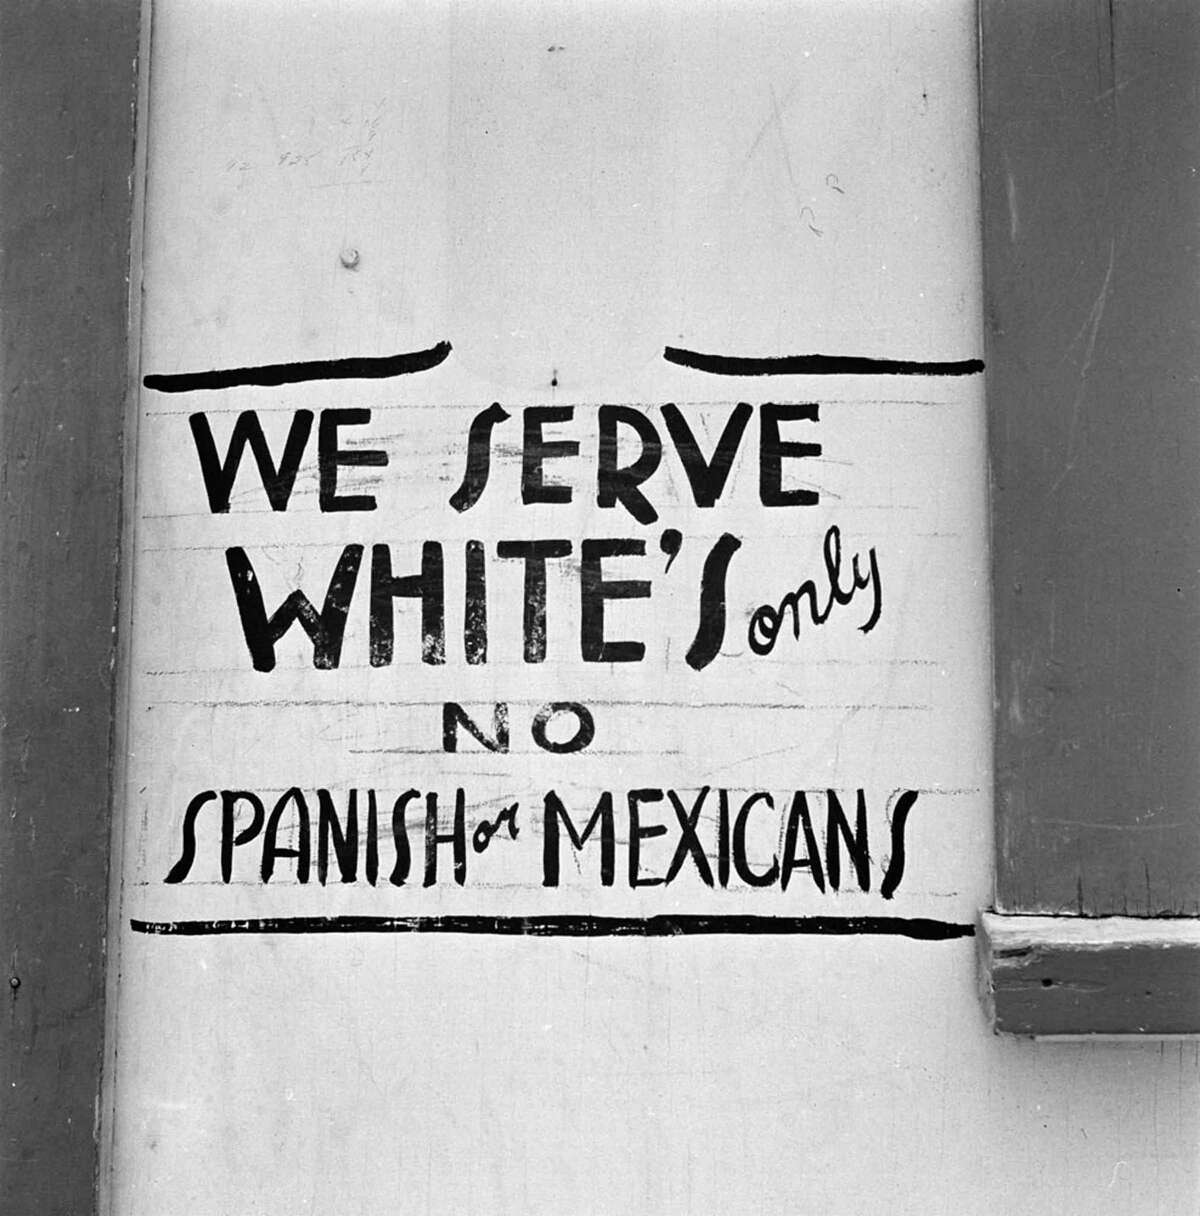 Jim Crow-style discrimination against Mexican-Americans routinely occurred in Texas, some of it even into the 1960s. This ugly past must not be hidden away.